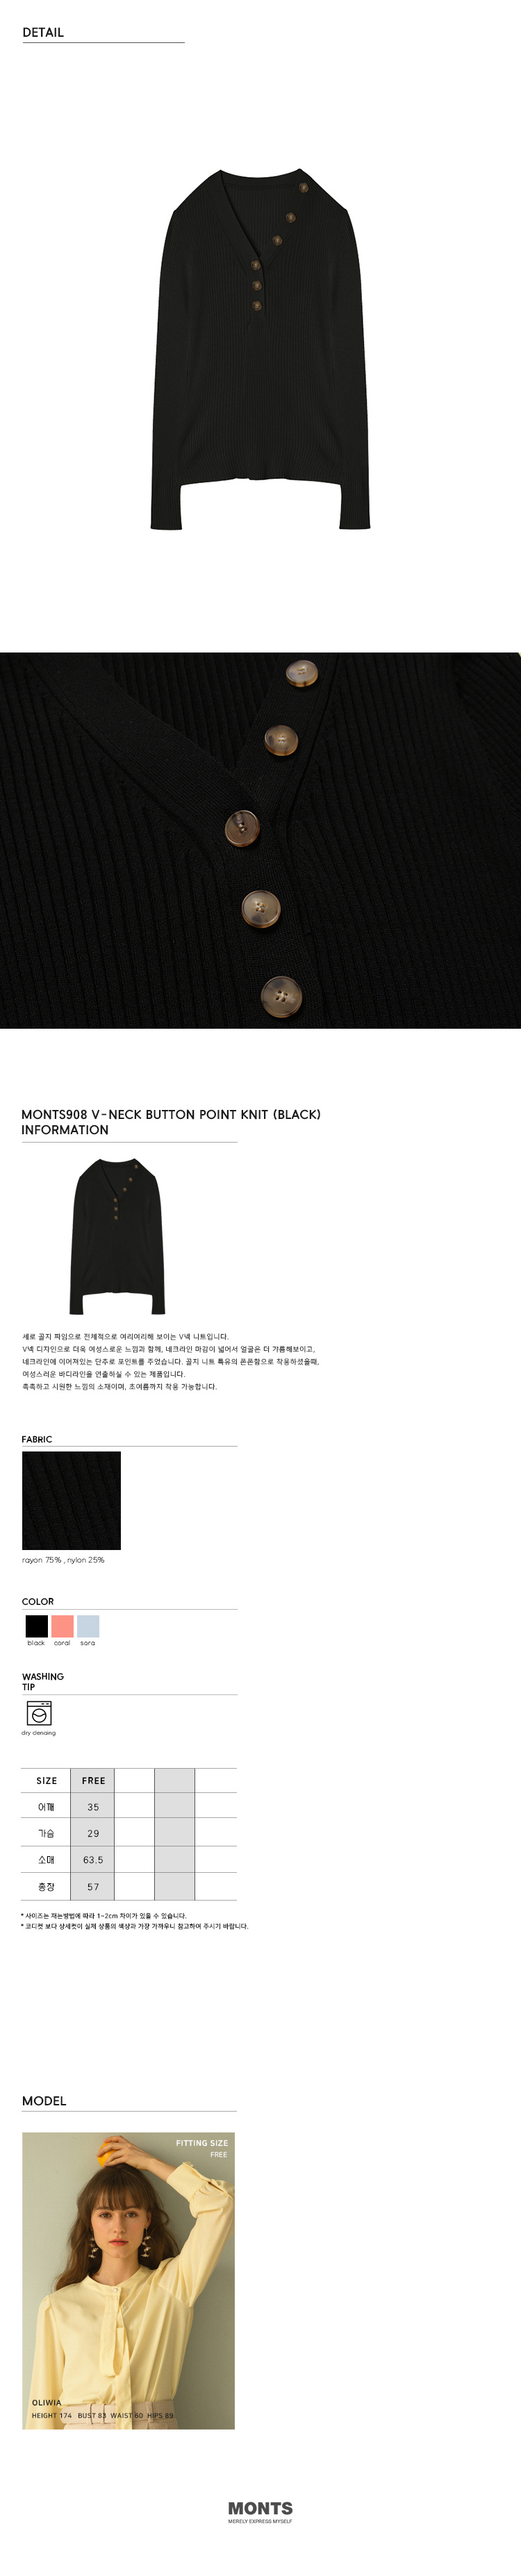 몬츠(MONTS) 908 v-neck button point knit (black)